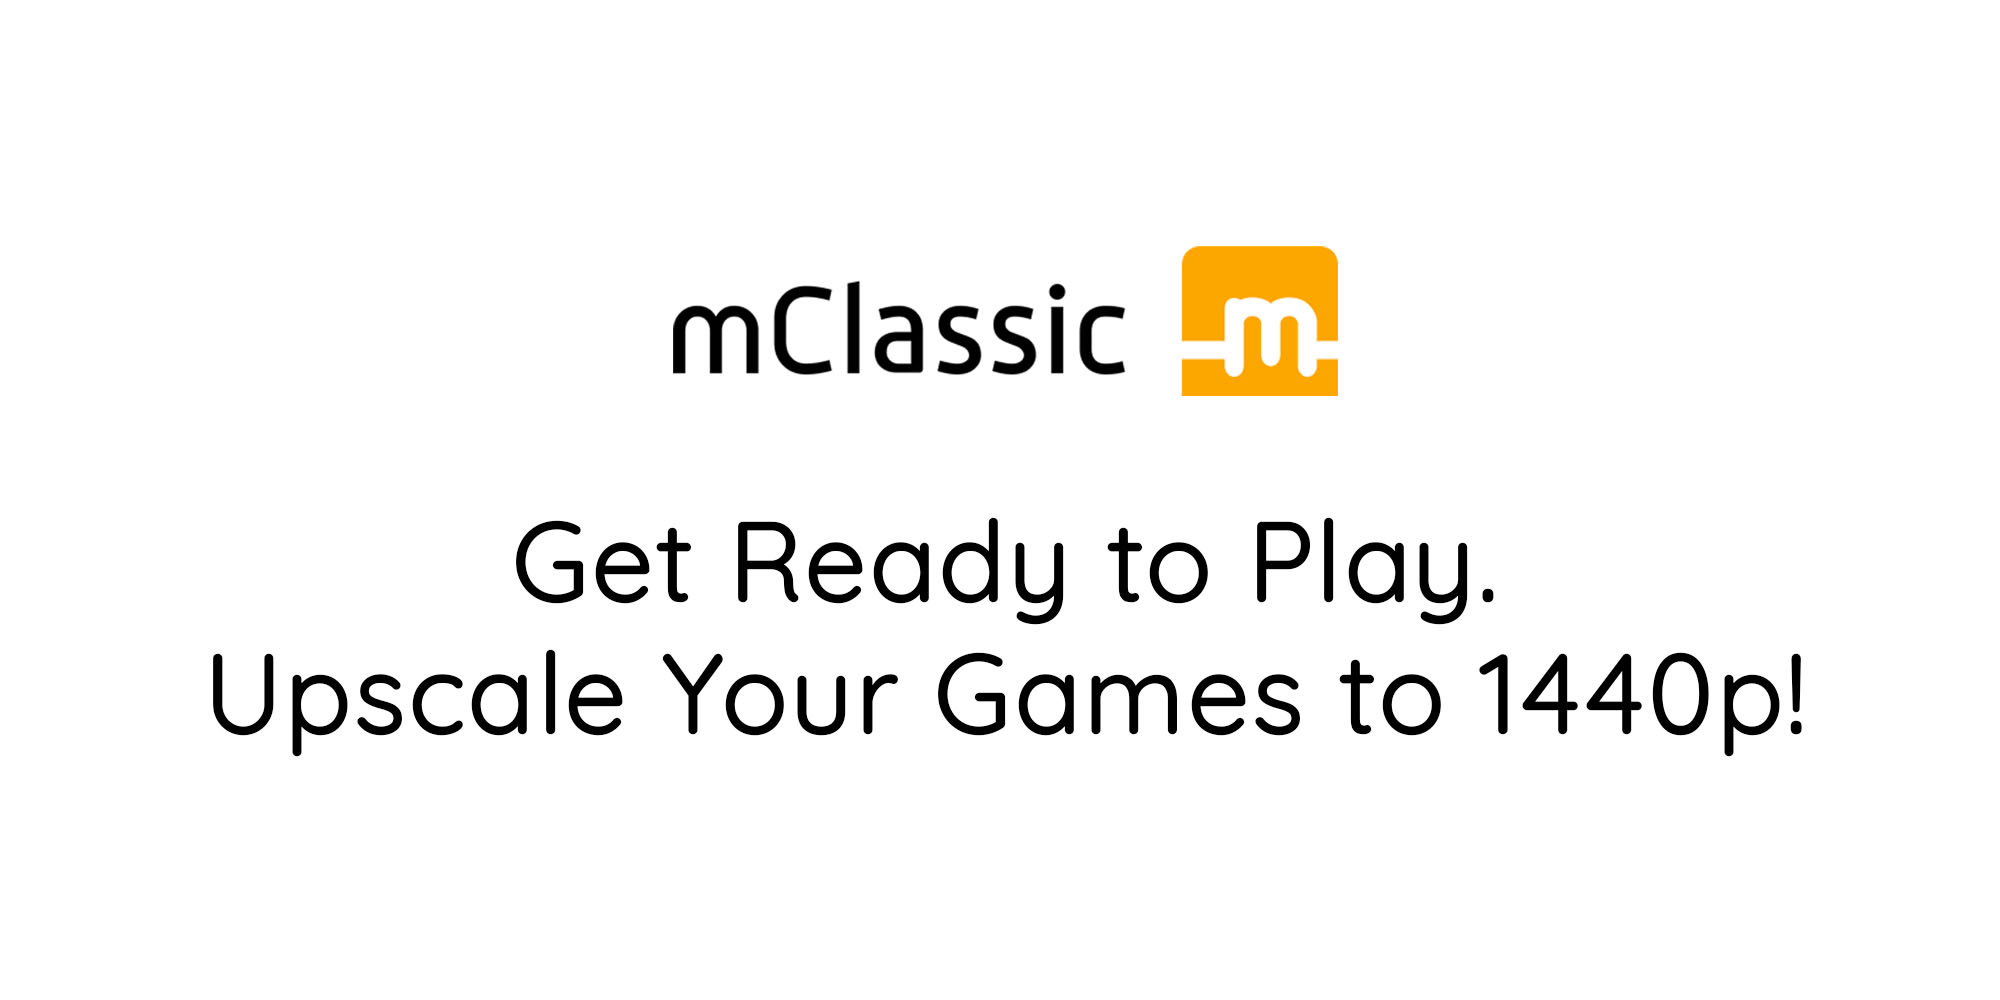 Get ready to play. Upscale your games to 1440p!